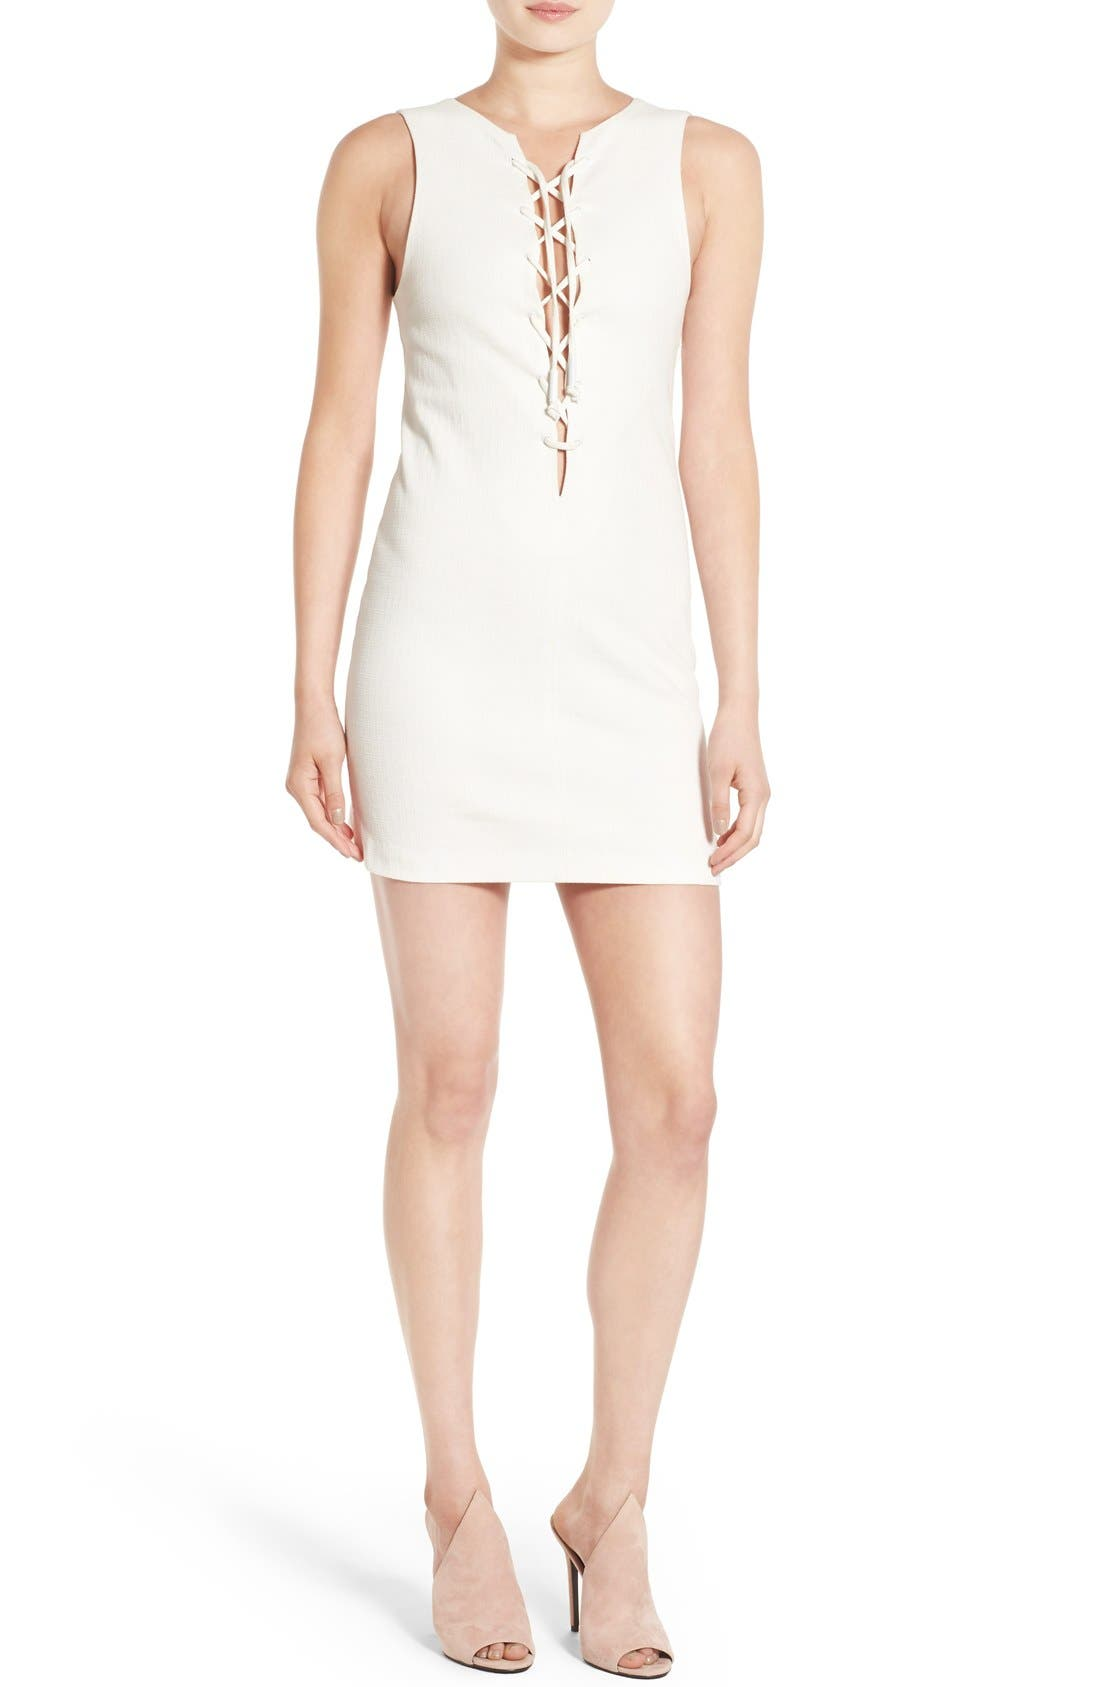 Main Image - KENDALL + KYLIE Lace-Up Tunic Dress